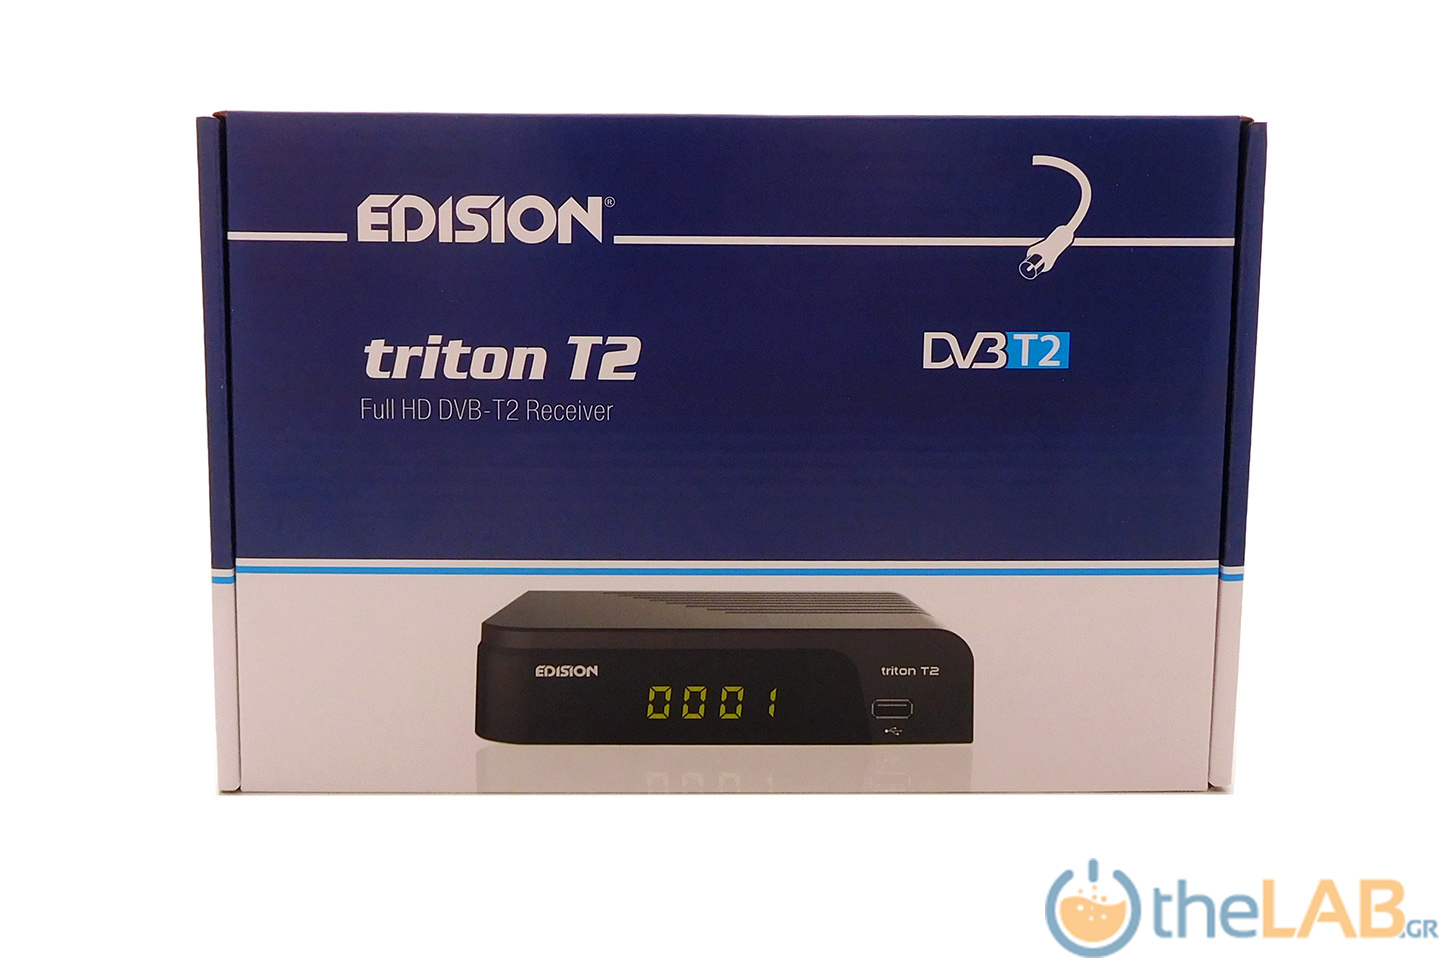 edision-triton-t2-review-1.jpg